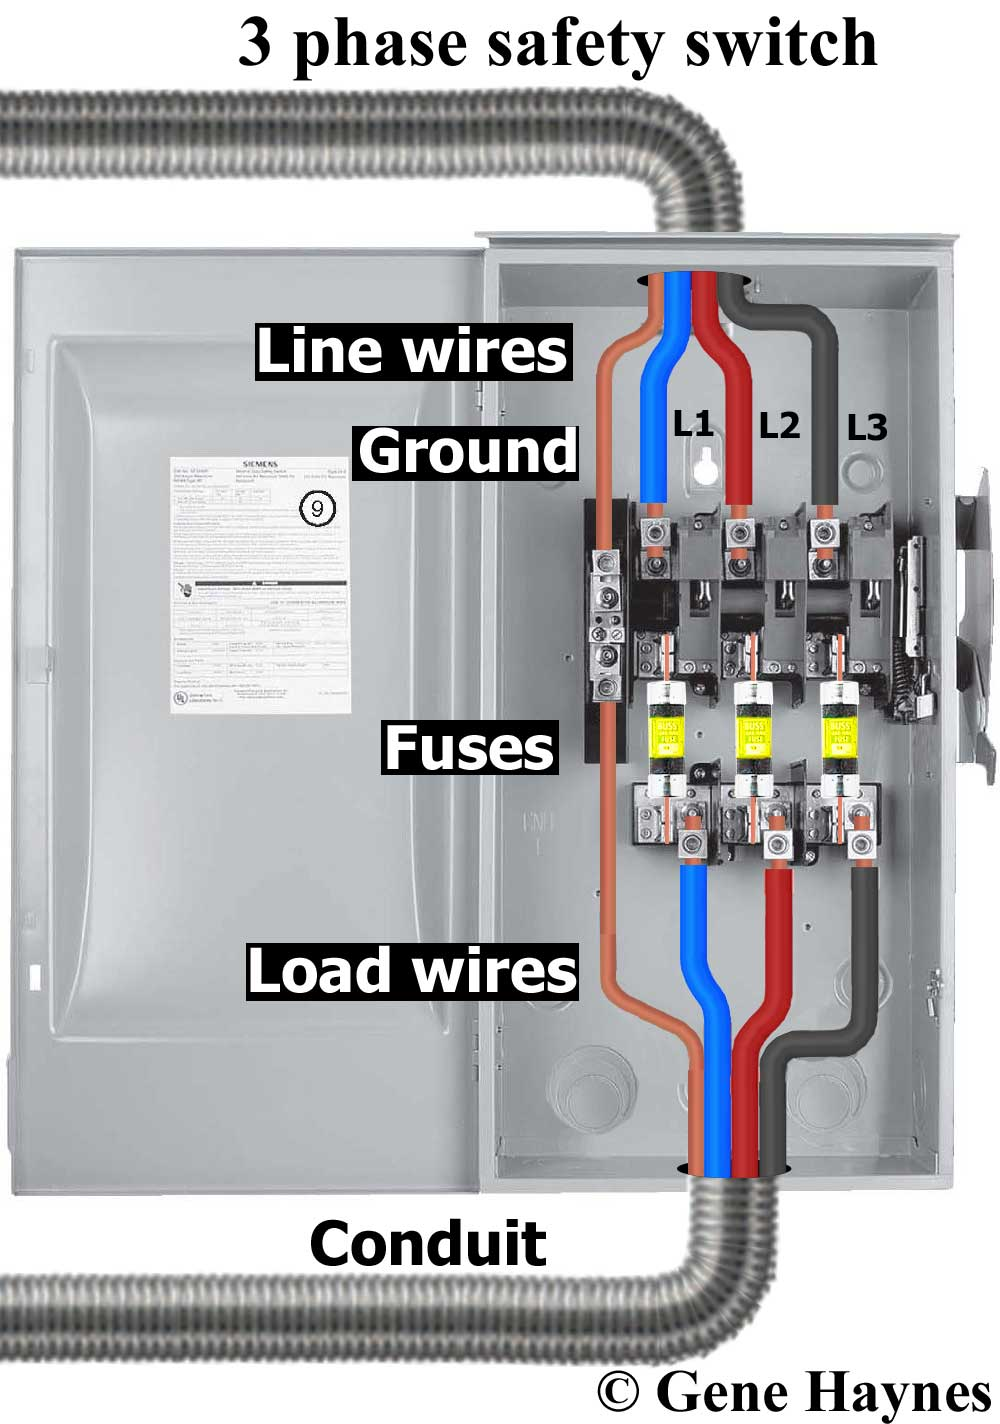 How To Wire Safety Switch Wiring Diagram Leg Drop Larger Image 3 Pole Example Shows Fusable This Is Called A 4 But Only Wires Are Disconnected By